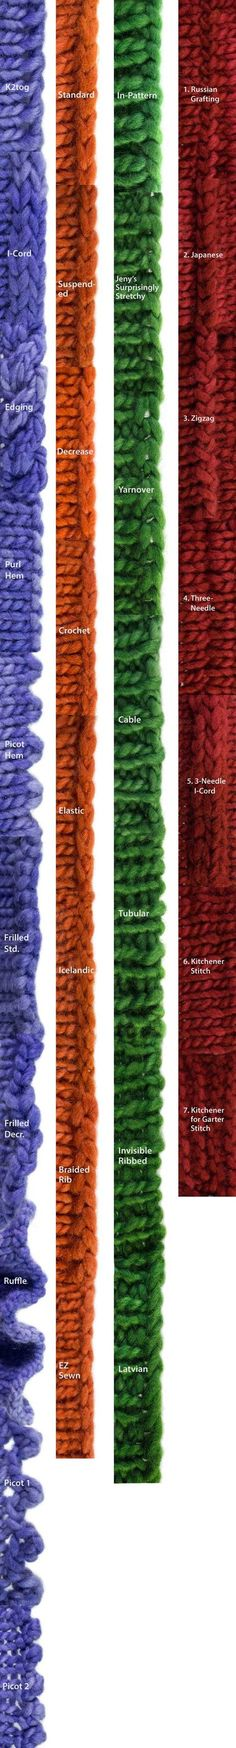 What All The Bind-Offs Look Like: A Bind-Off Extravaganza I need to learn how to make the fancy edging ones